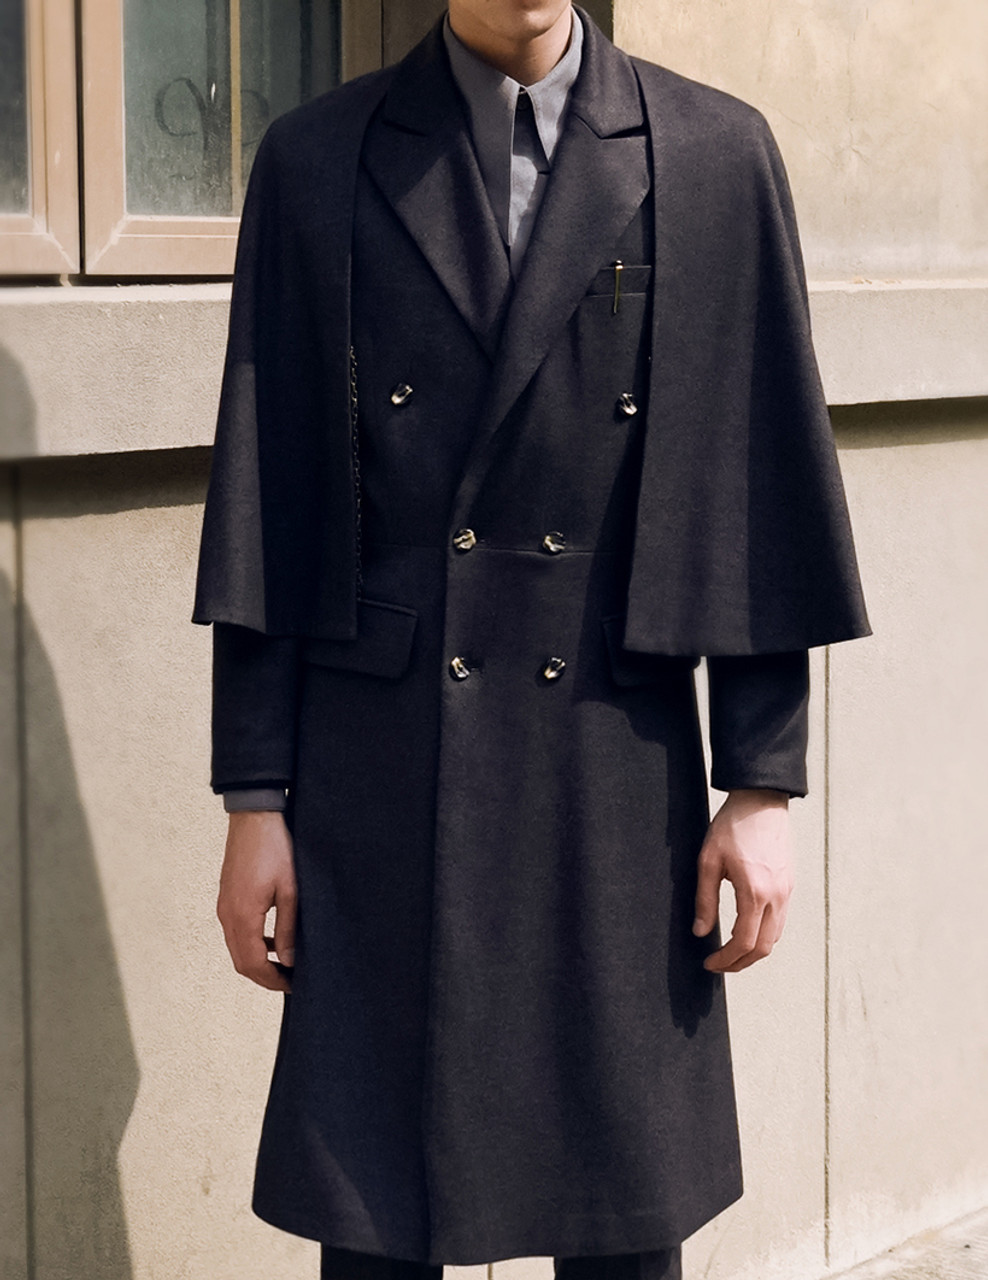 Vintage Mens Coat Worsted Wool Coat Frock Coat Inverness ...